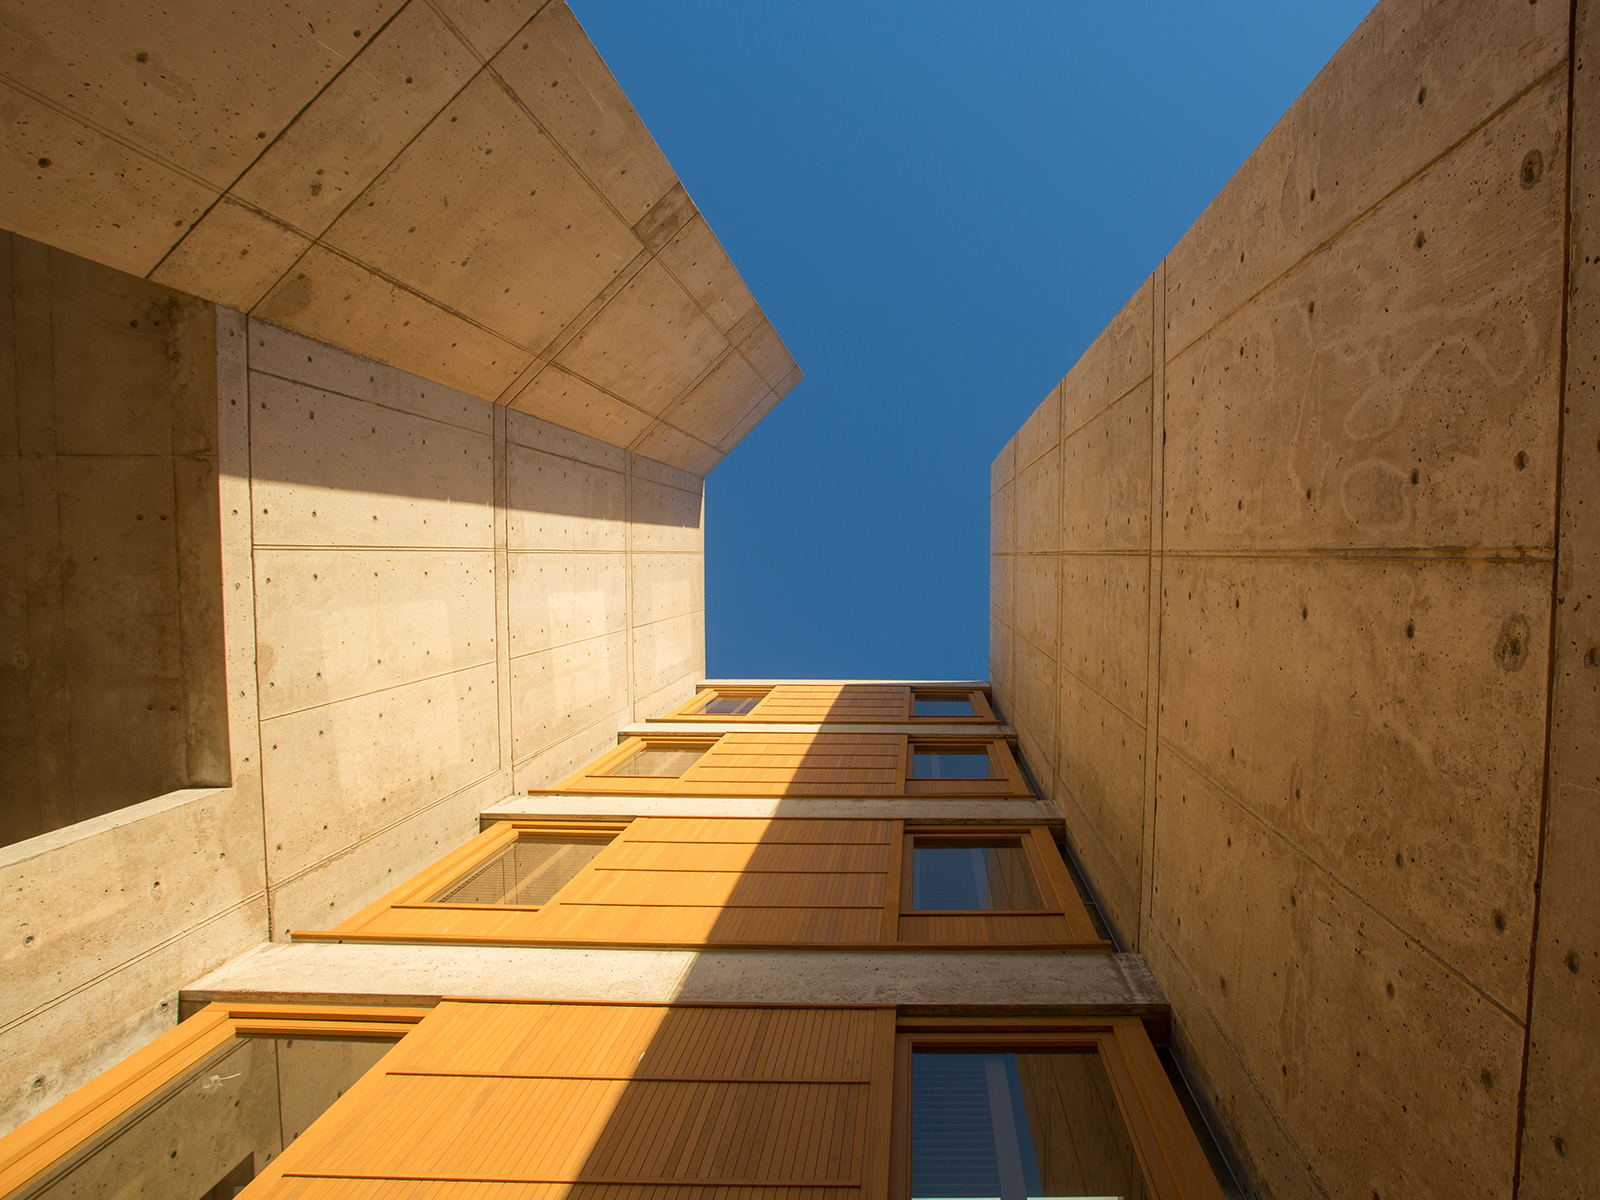 A view from the ground up the side of a building at the Salk institute